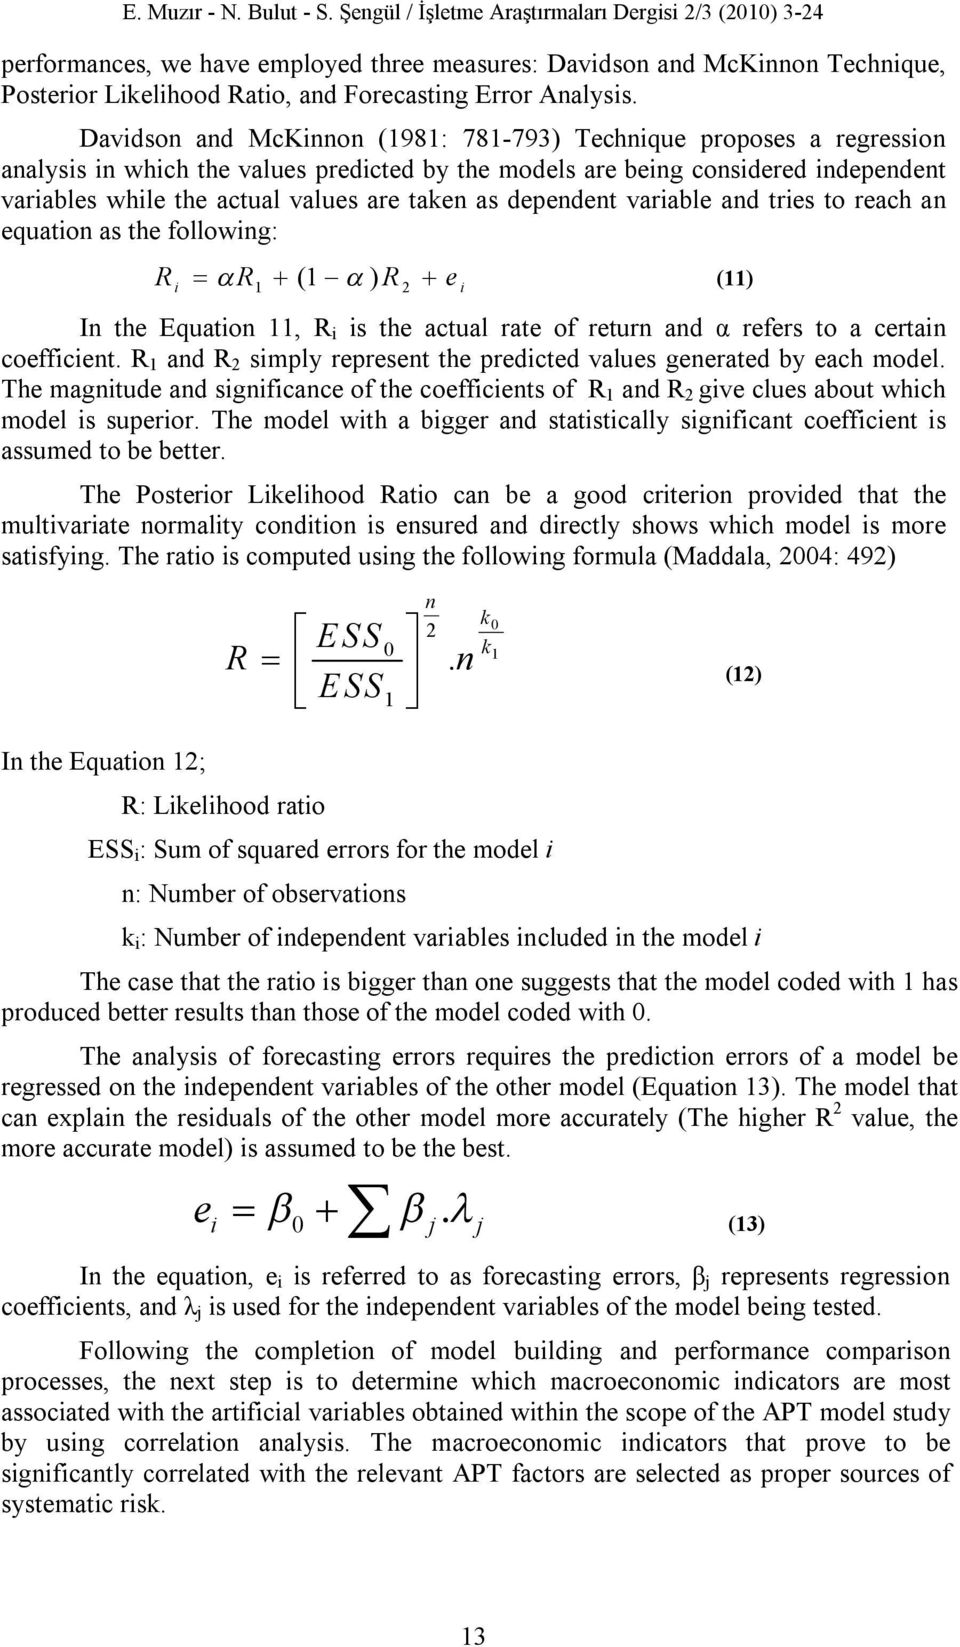 Davidson and McKinnon (1981: 781-793) Technique proposes a regression analysis in which the values predicted by the models are being considered independent variables while the actual values are taken